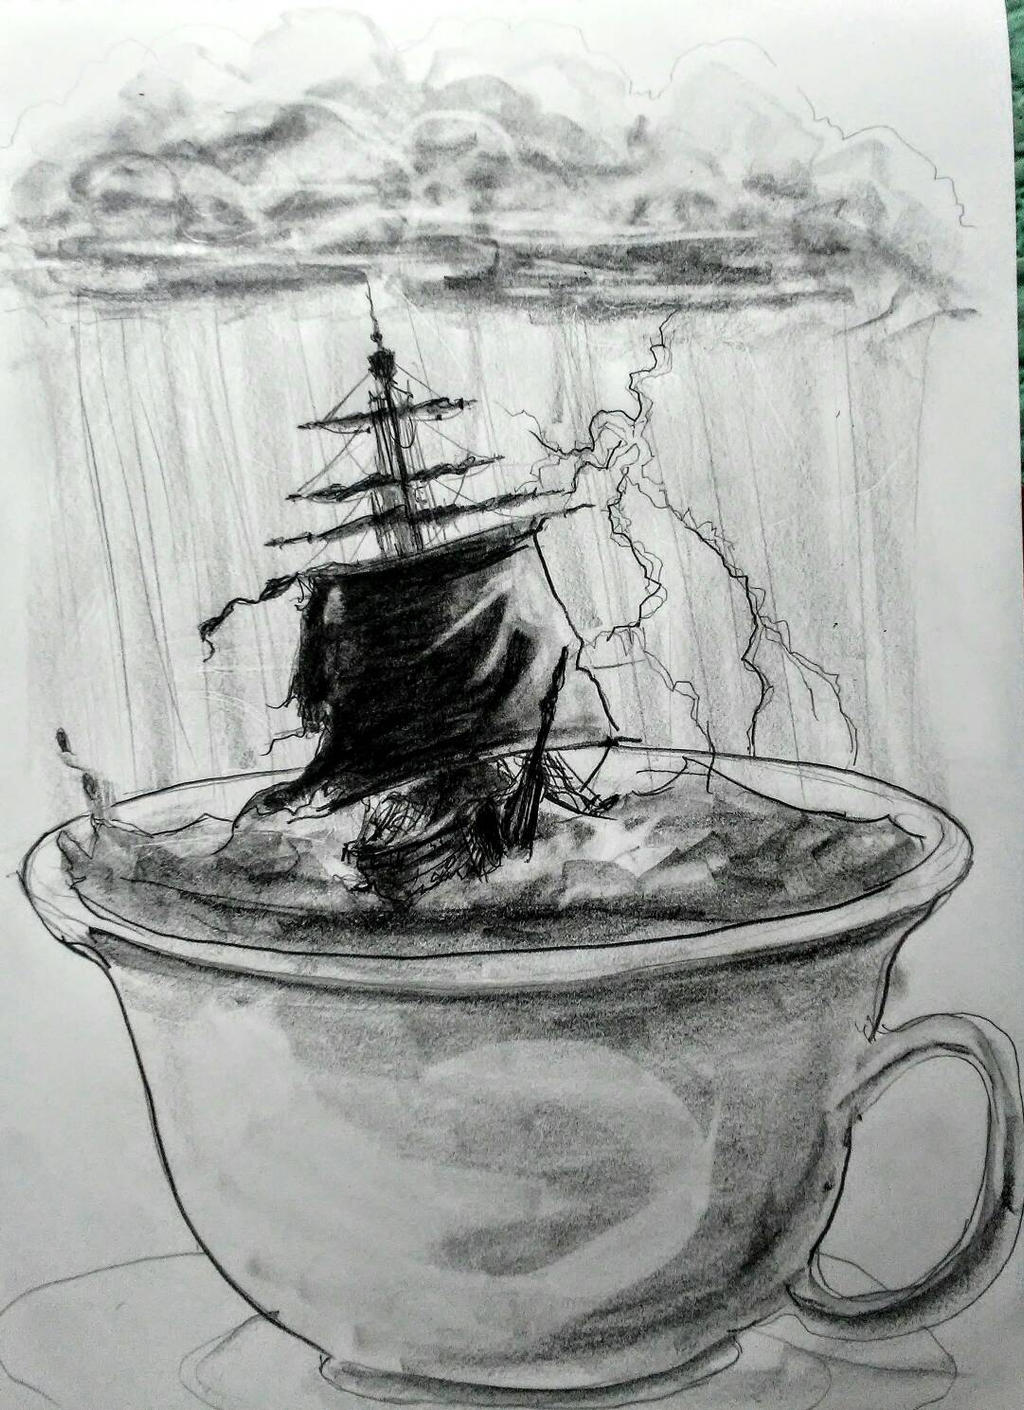 tempest in a teacup